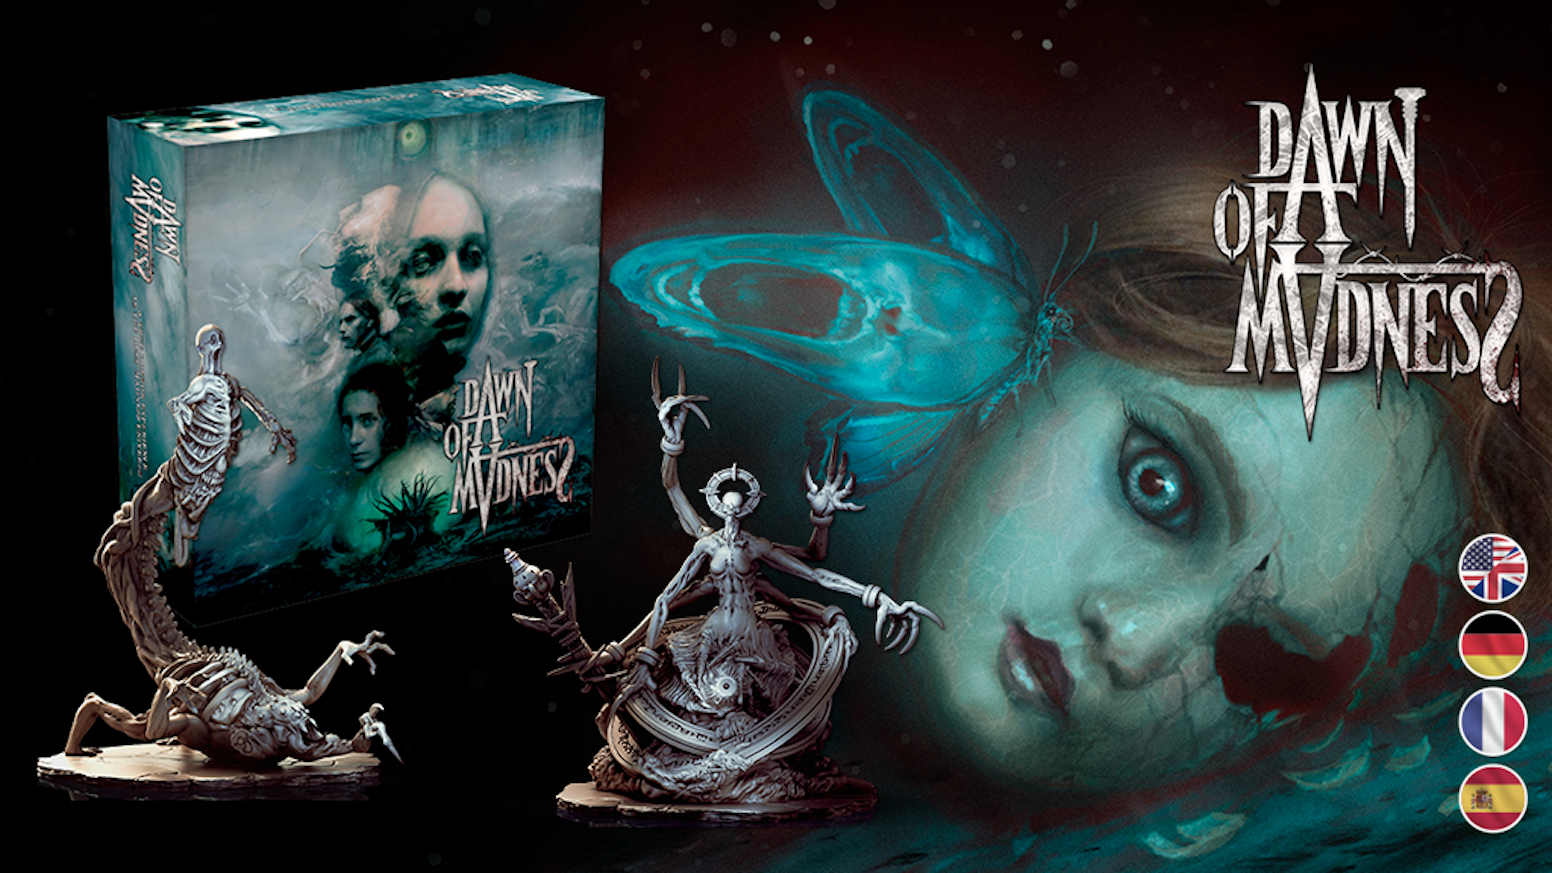 A mind-shattering story-driven cooperative board game for 1-4 players that is a true horror experience.